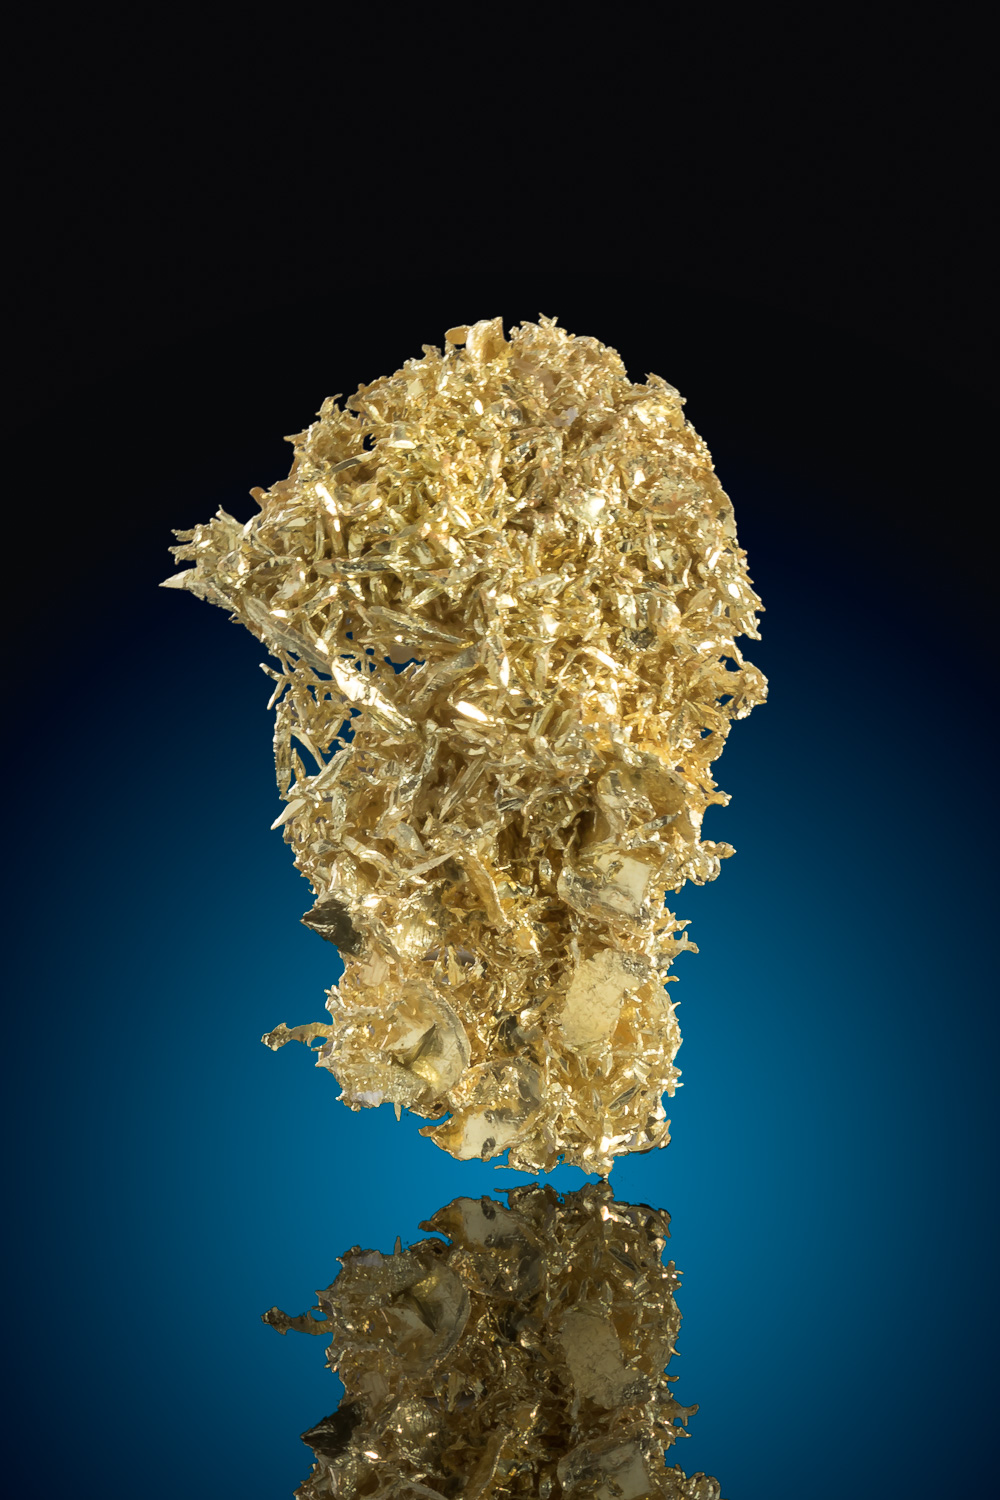 Brilliant Wire Gold Cluster - Olinghouse Gold Mine - Nevada